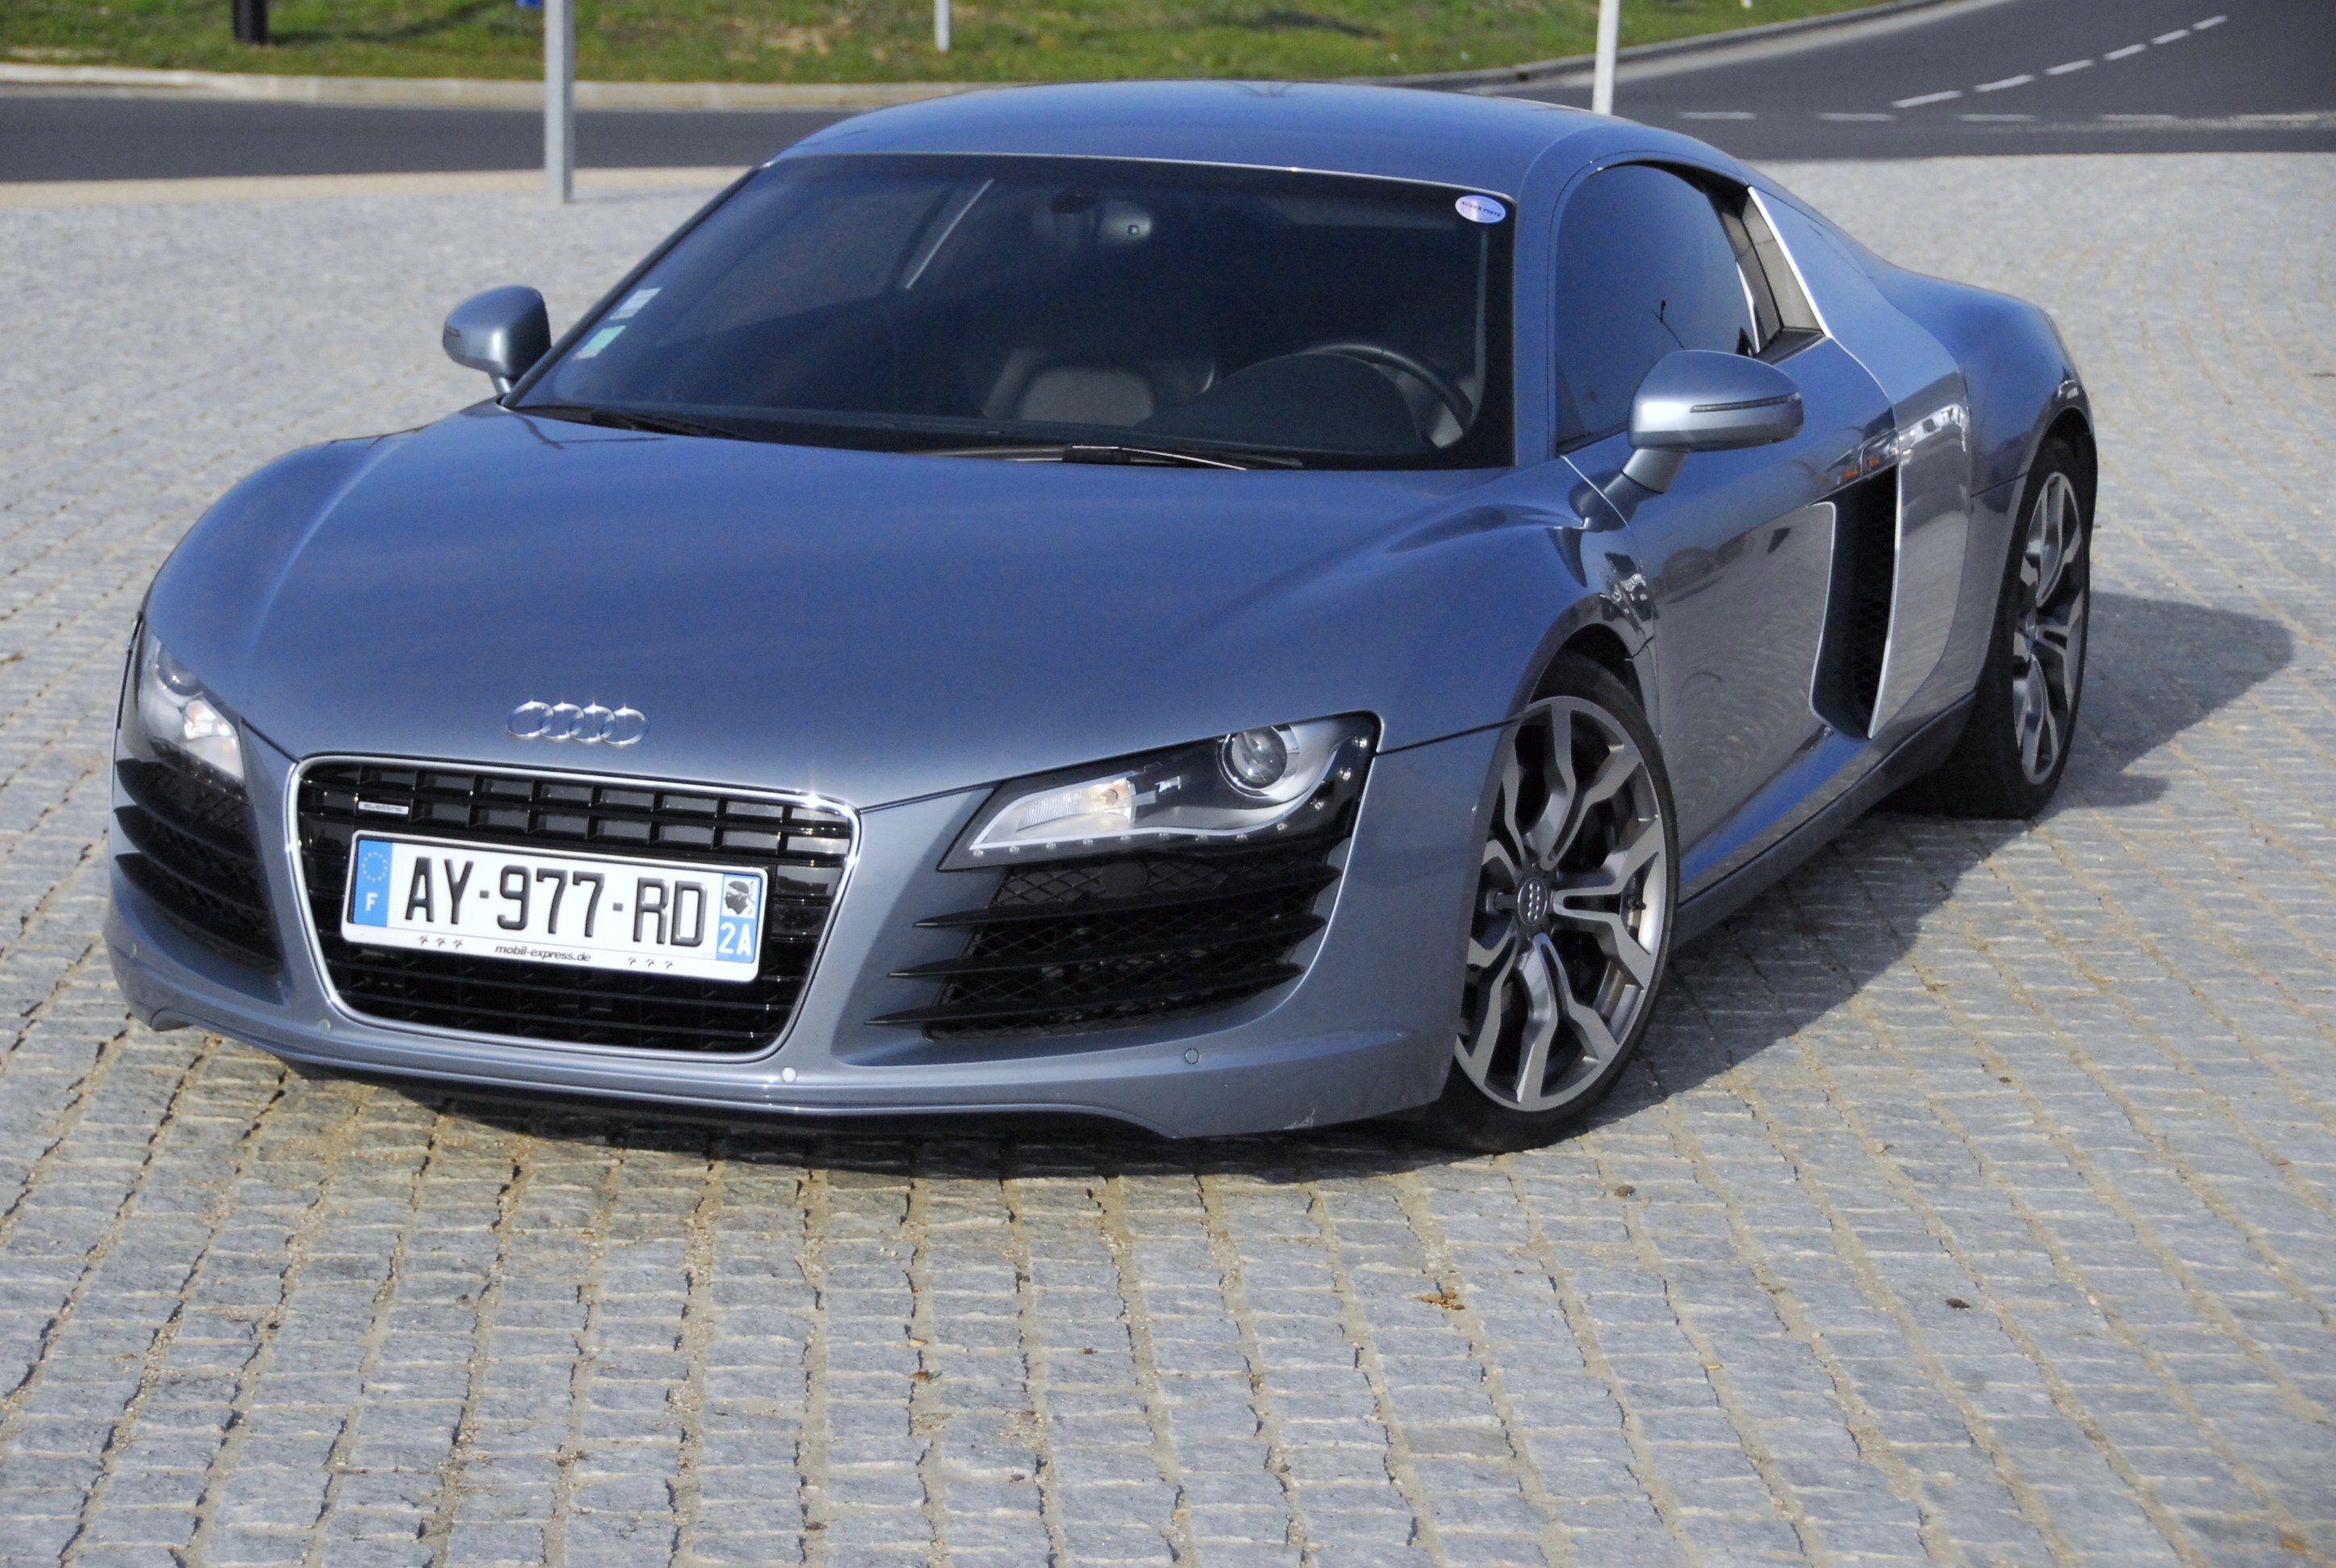 Location Audi R8 Paris Ile de France